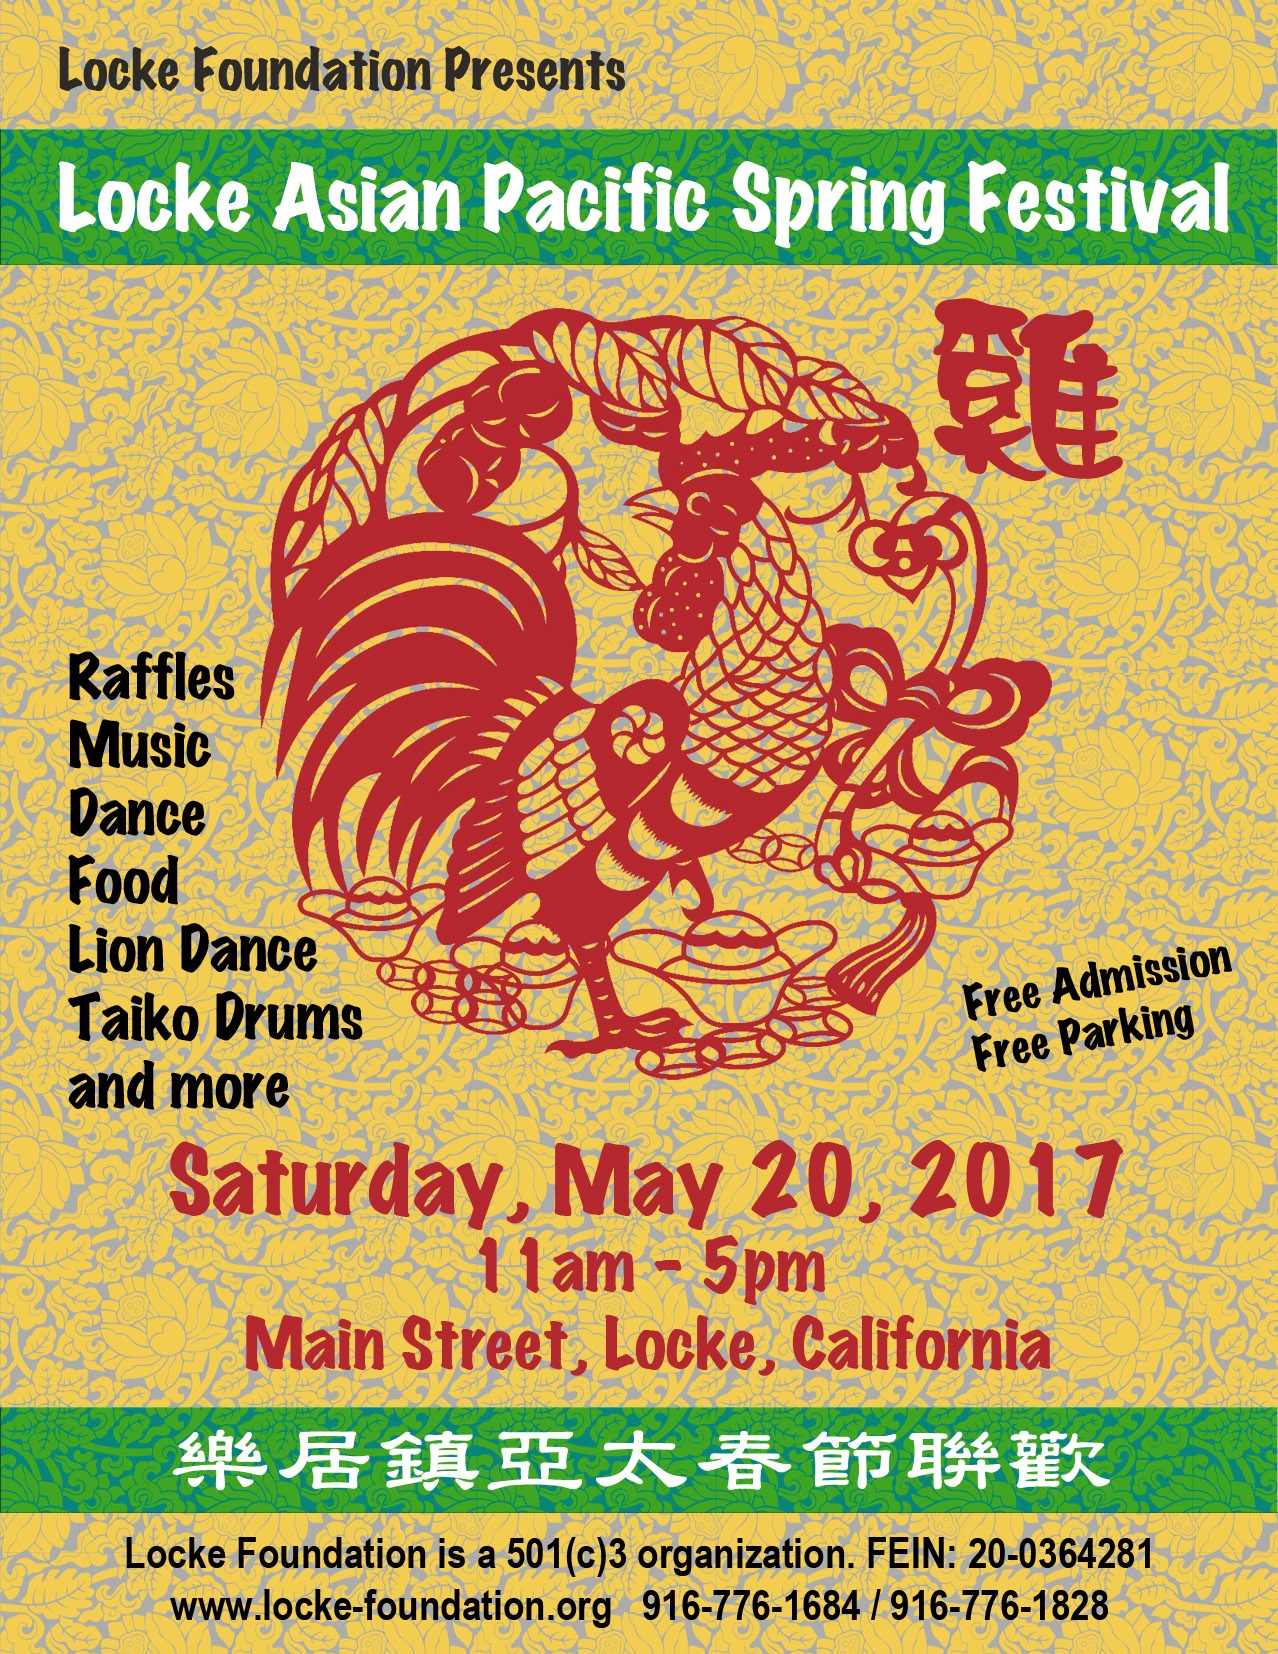 Locke Asian Pacific Spring Festival